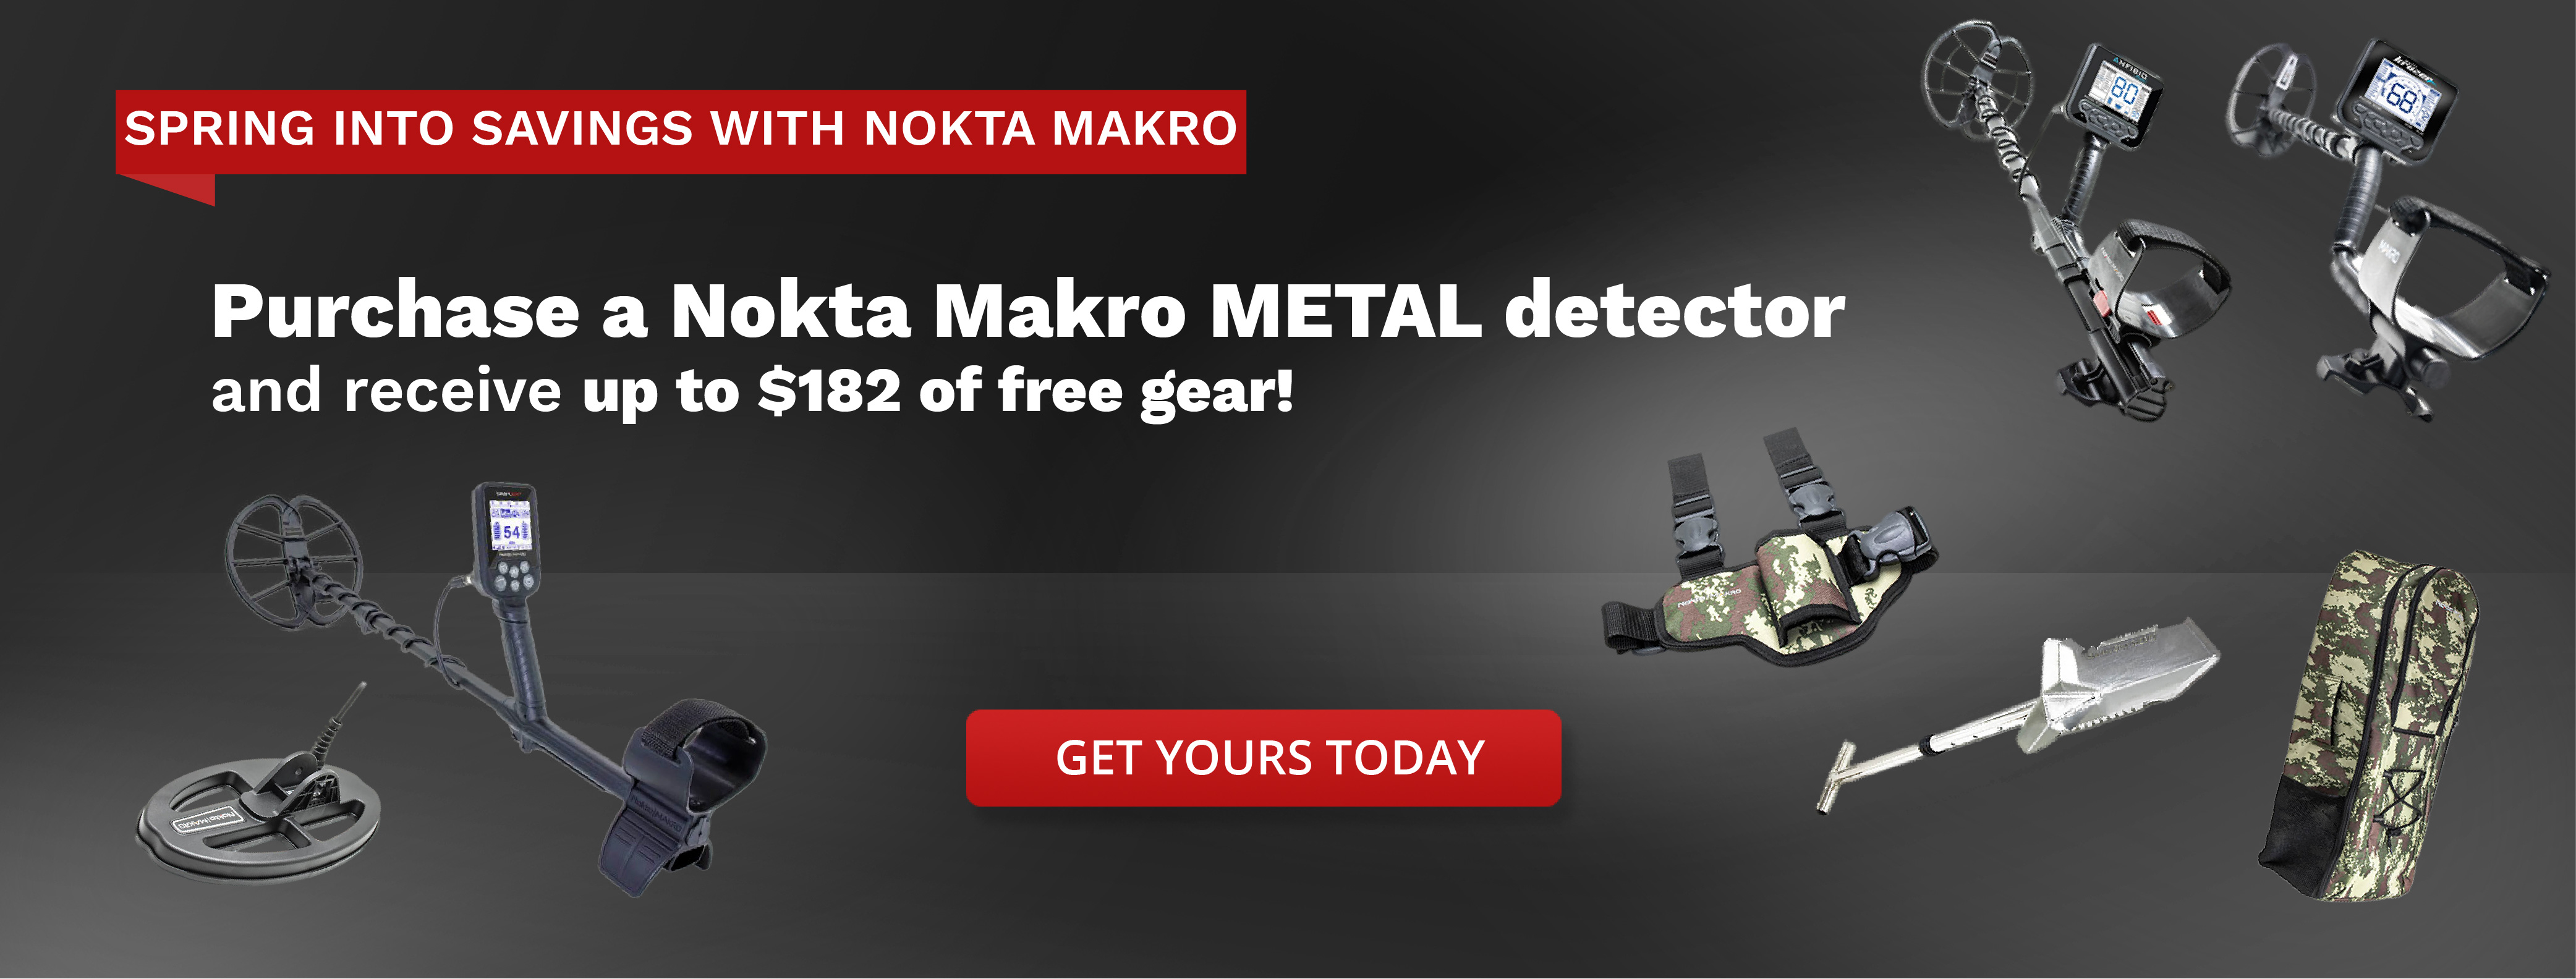 Nokta Makro Anfibio Kruzer Metal Detectors Above Backpack Shovel and Camo Holster on Right Side, and Simplex Metal Detector on Left Side with SP24 Coil Beneath. Buy a Nokta Makro Metal Detector and Receive $182 of Free Gear in White Text Centered